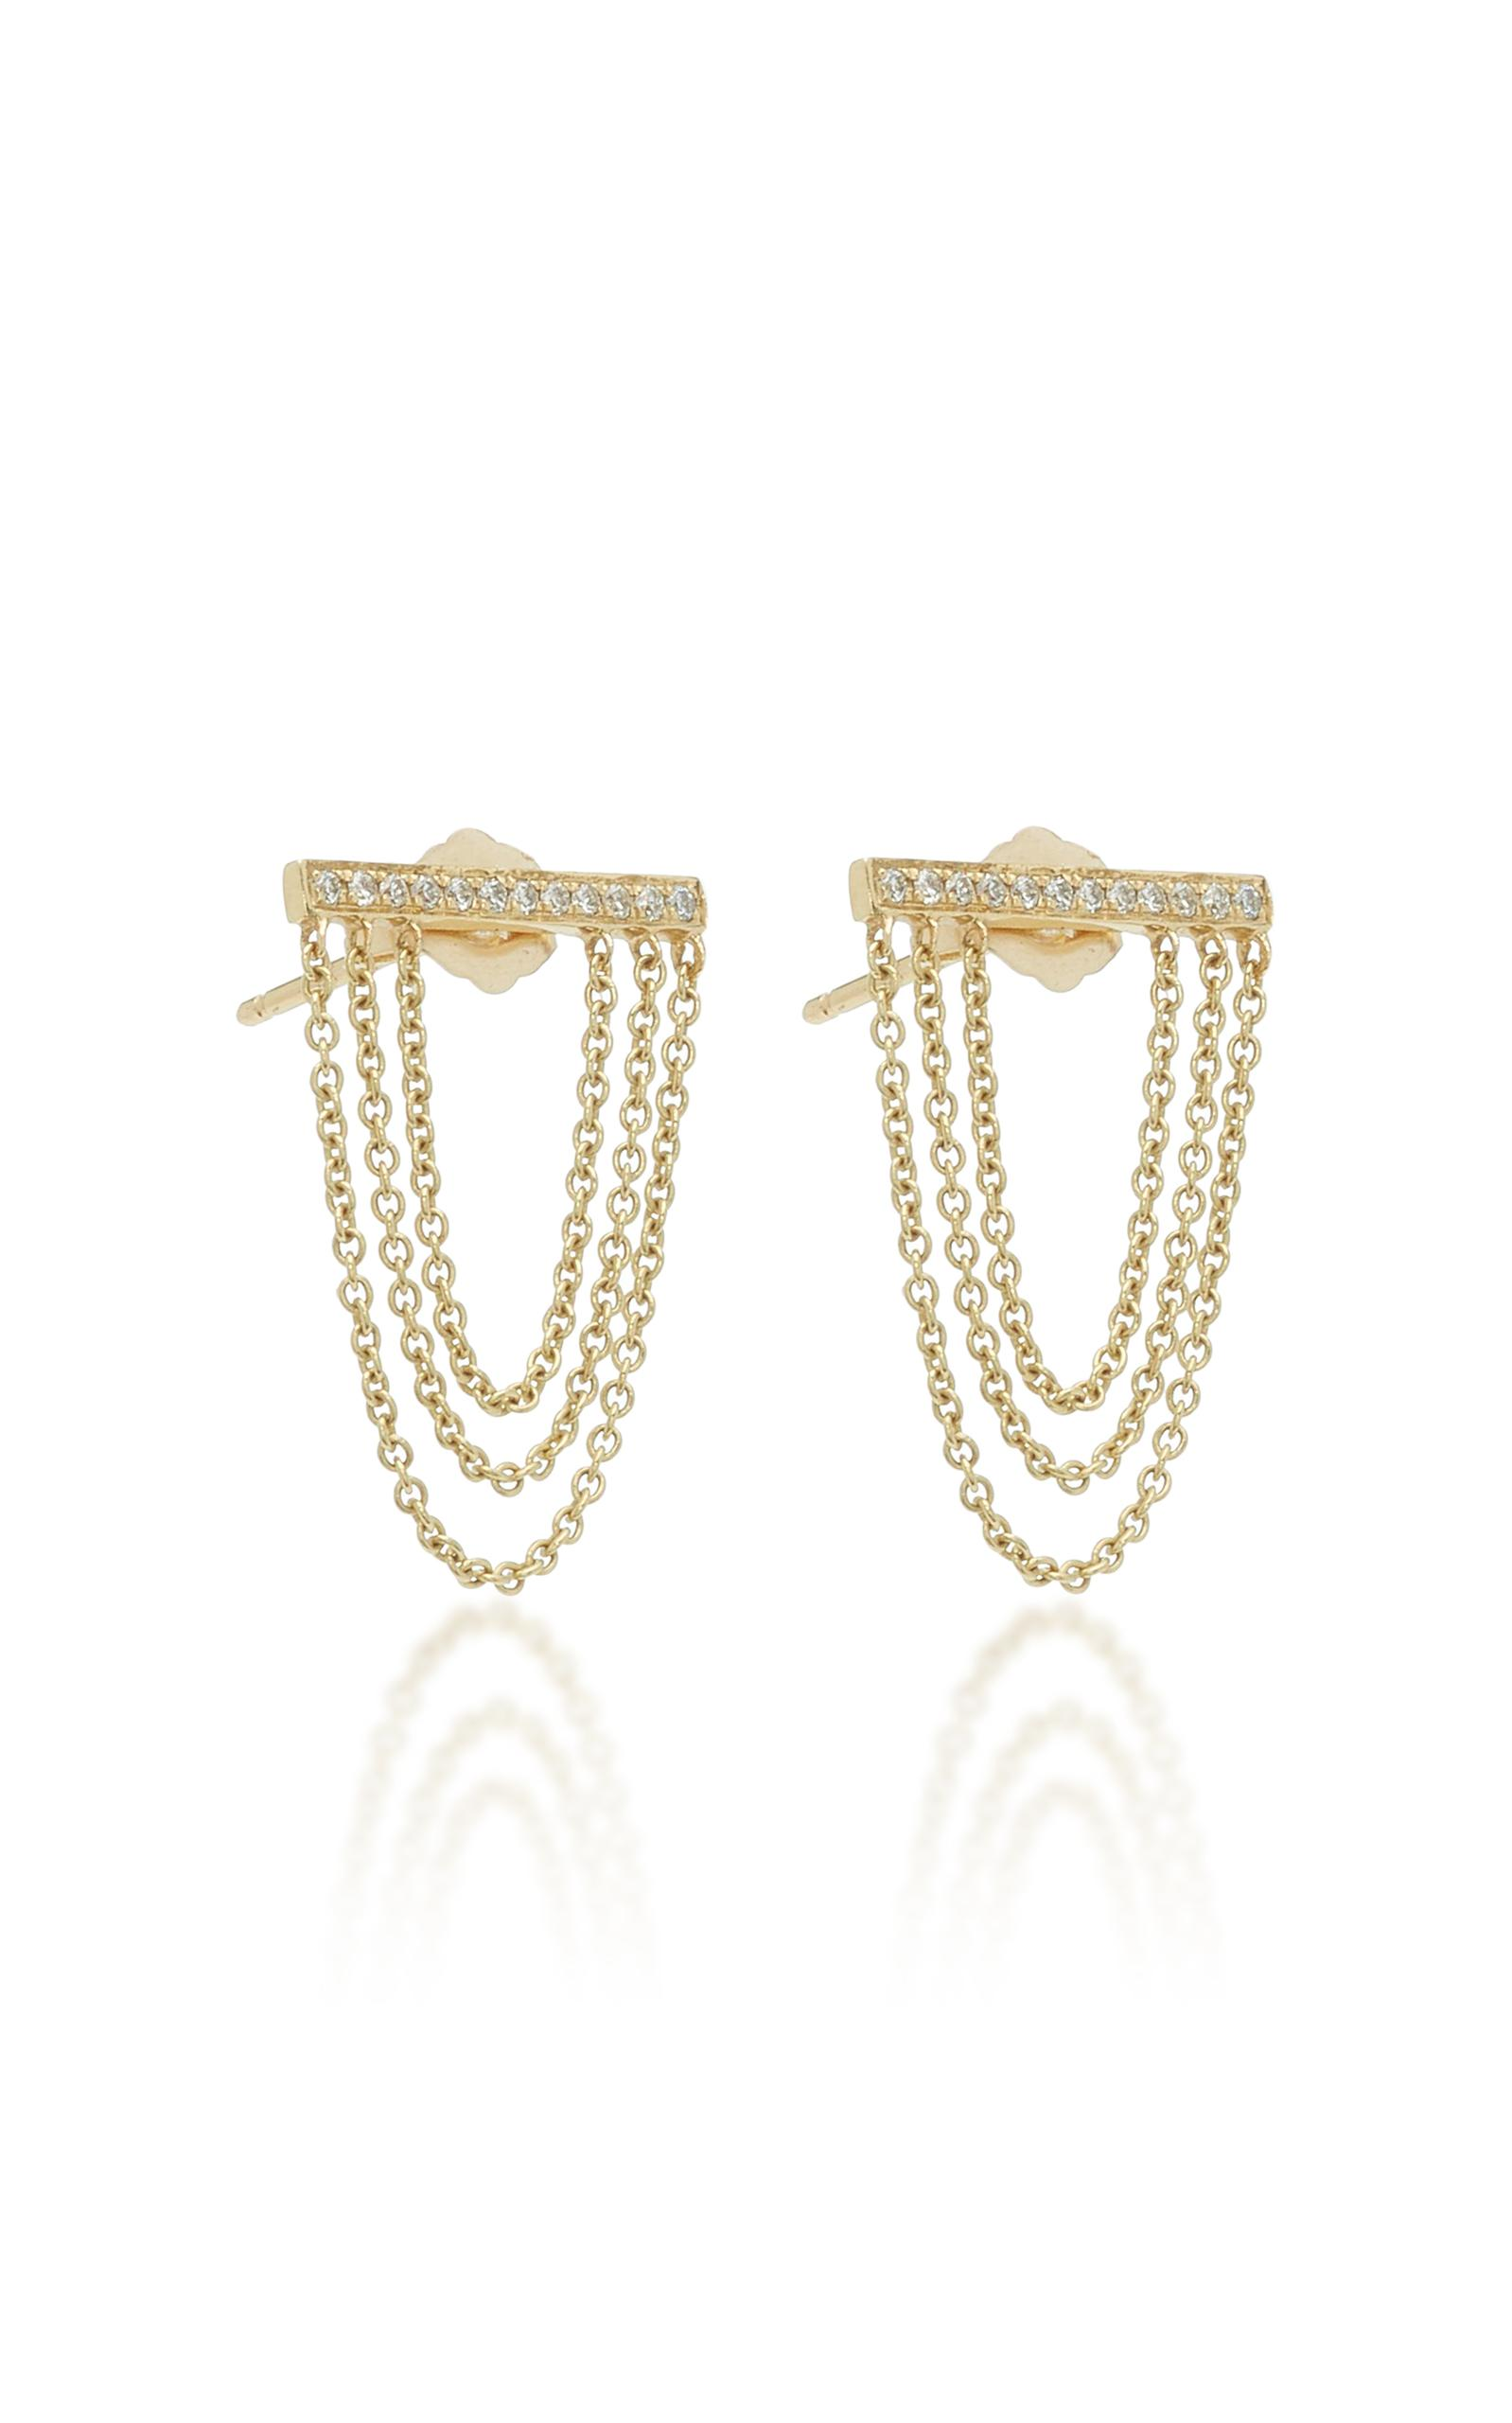 Sydney Evan Pave Triple Hanging Chain Studs in Gold (Metallic)